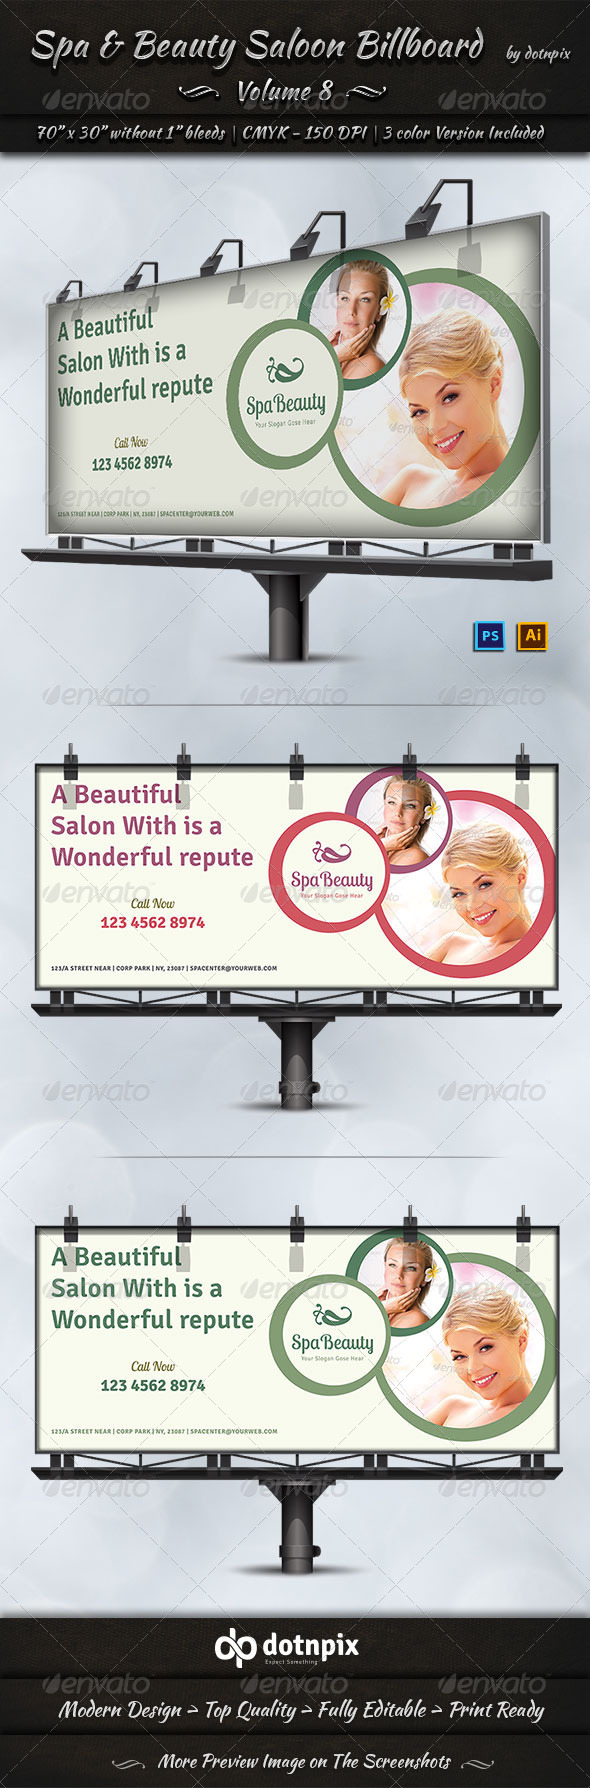 Spa & Beauty Saloon Billboard Volume 8